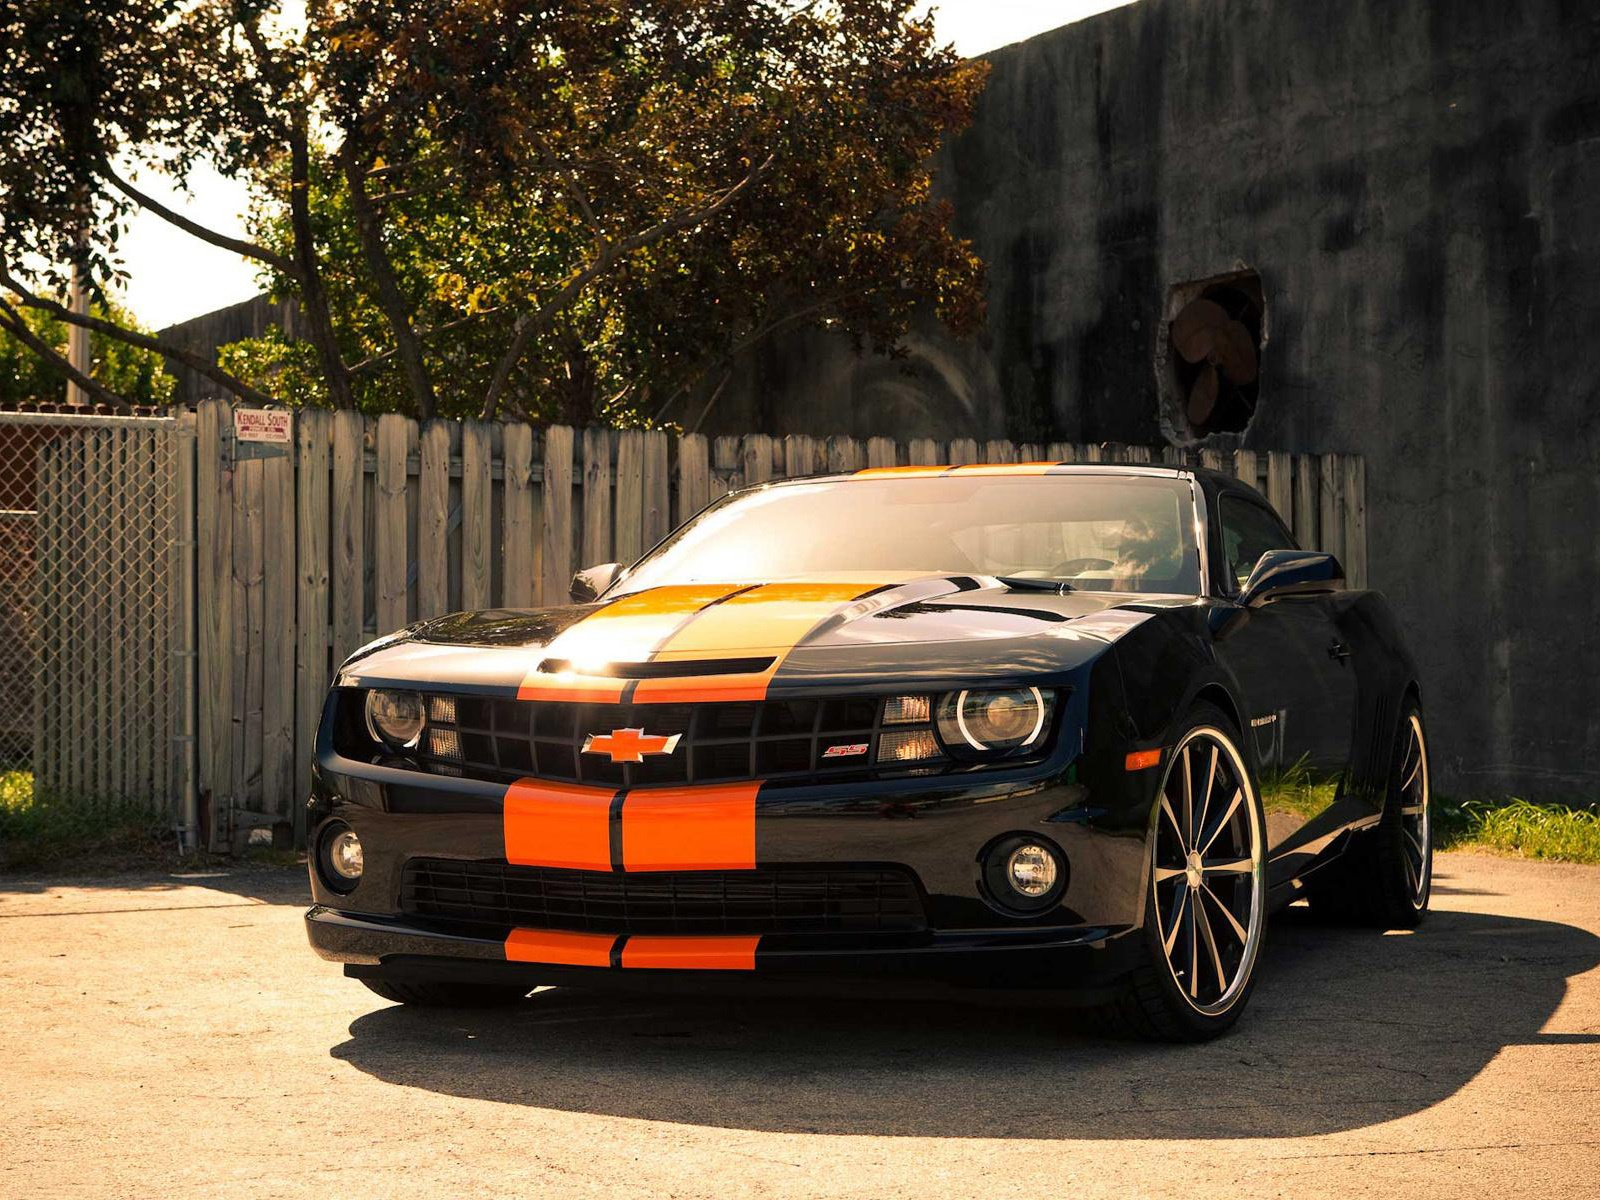 Chevrolet Camaro Ss Car Wallpapers In Jpg Format For Free Download